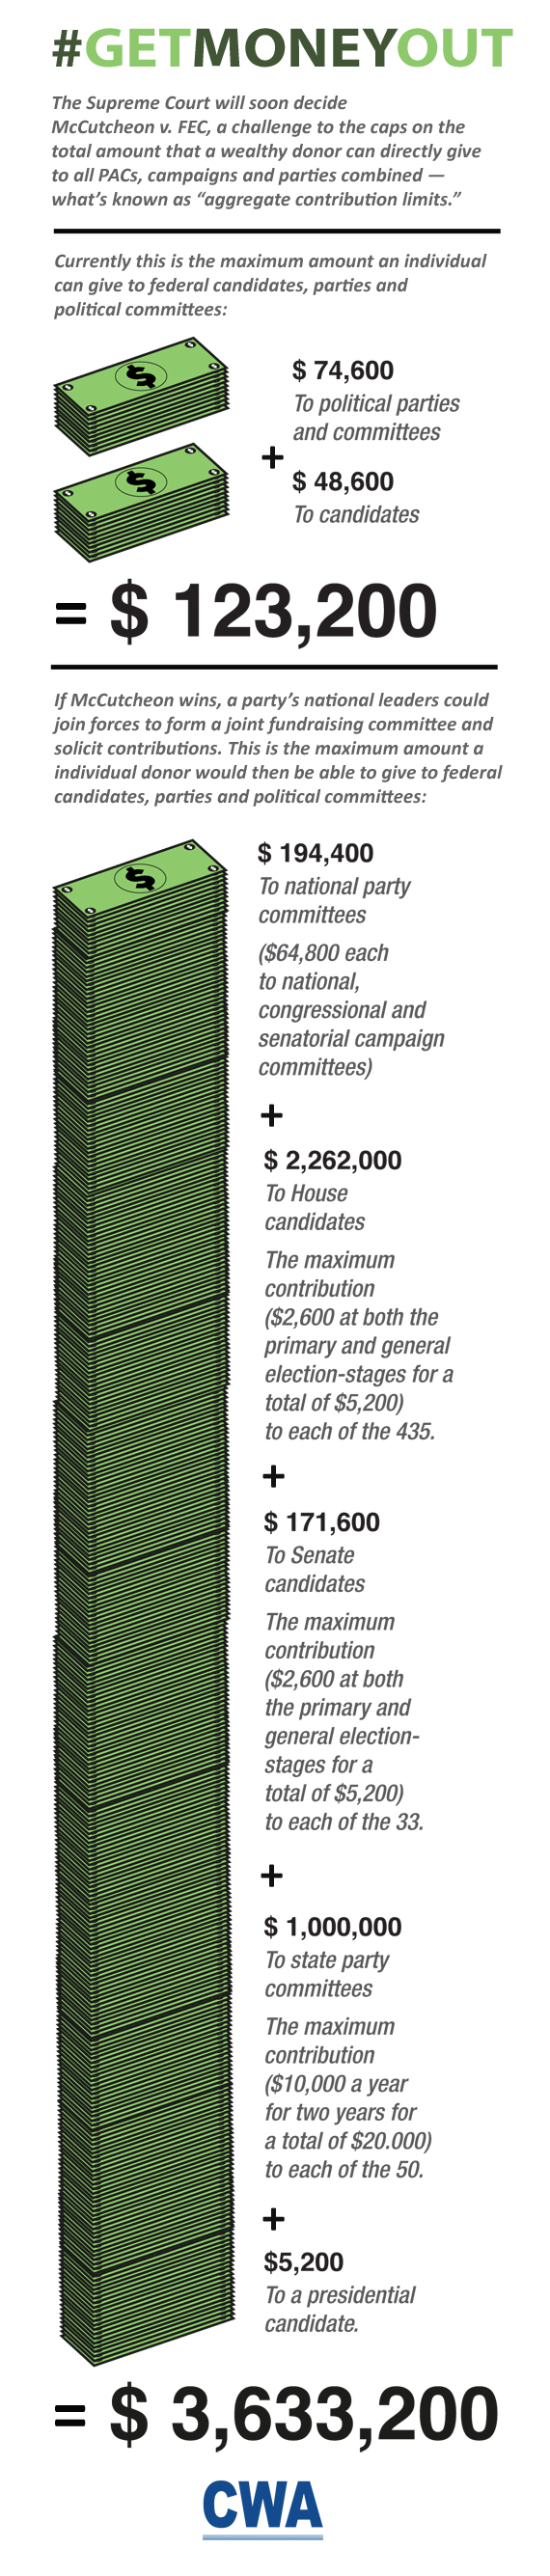 Smart chart explaining how much an individual would be able to contribute to political campaigns if McCutcheon v. FEC is resolved in McCutcheon's favor.